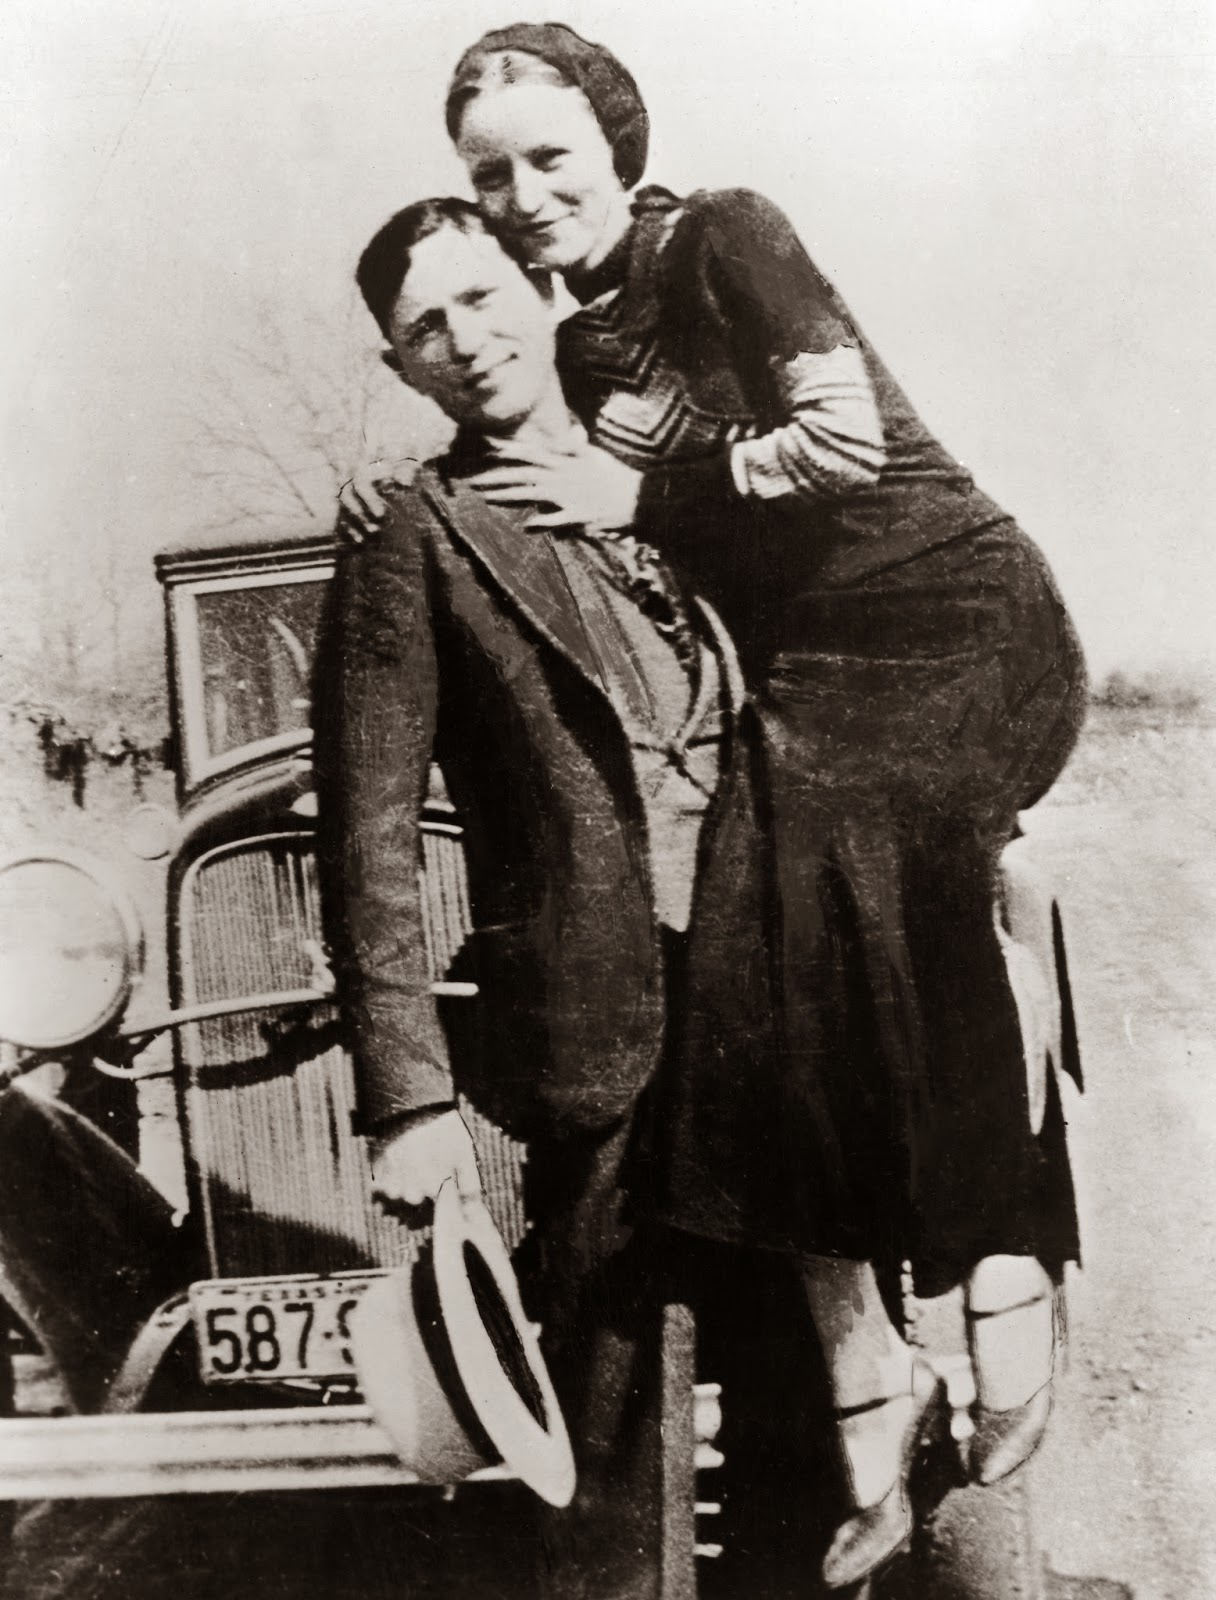 His Name Is Studd: But it's death for Bonnie and Clyde